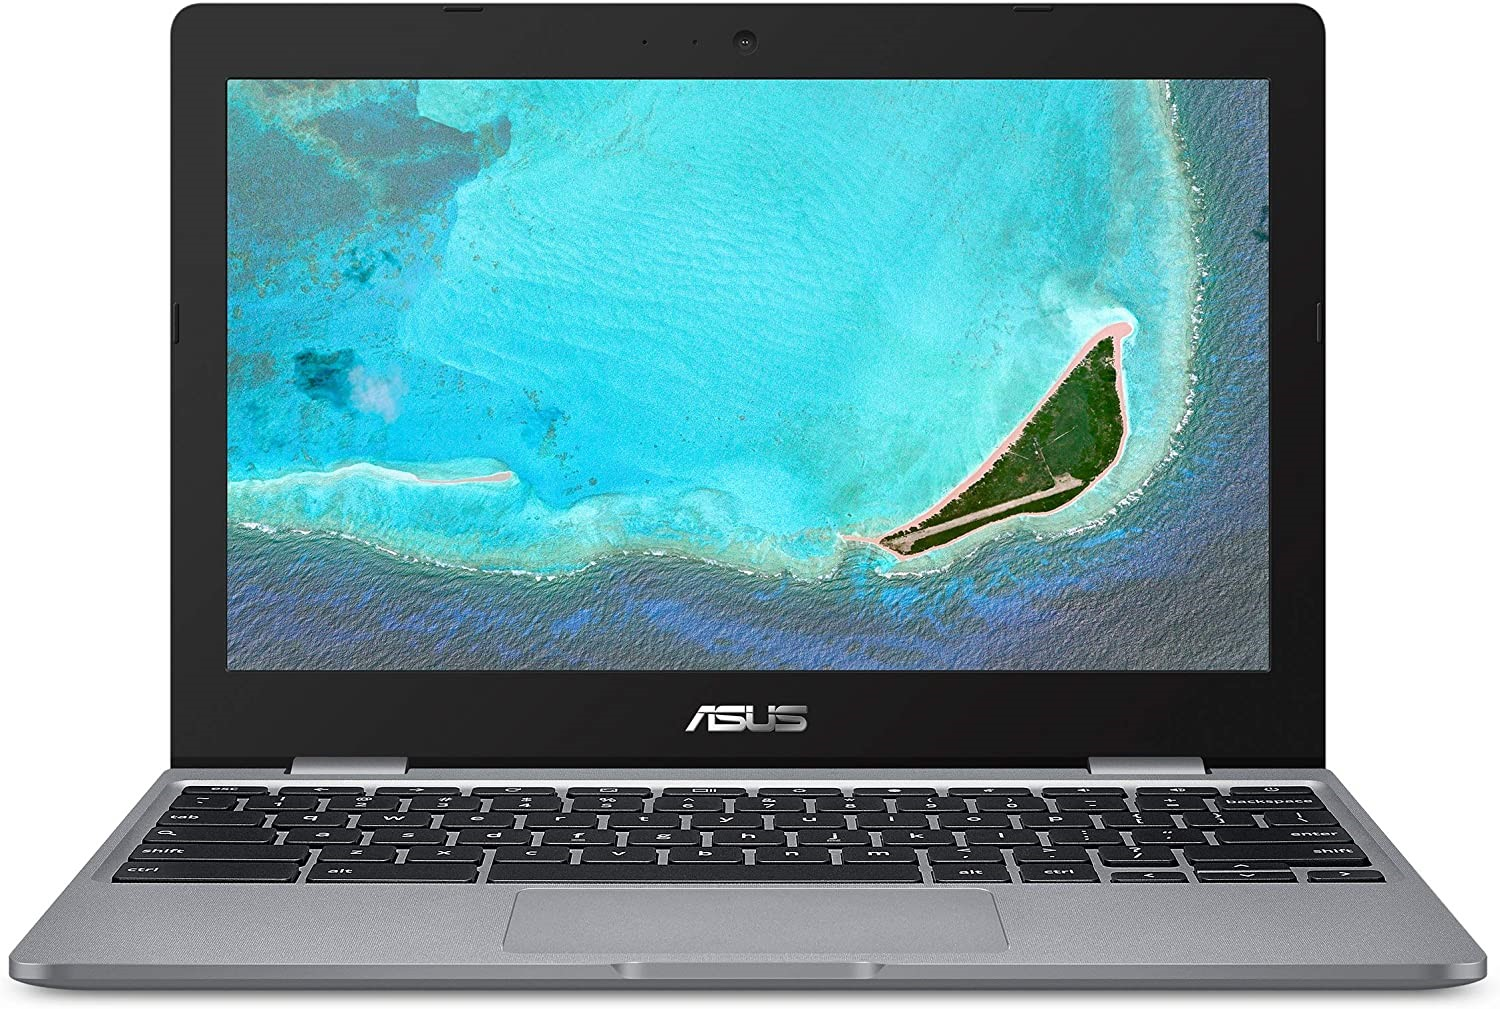 ASUS Chromebook C223 Laptop